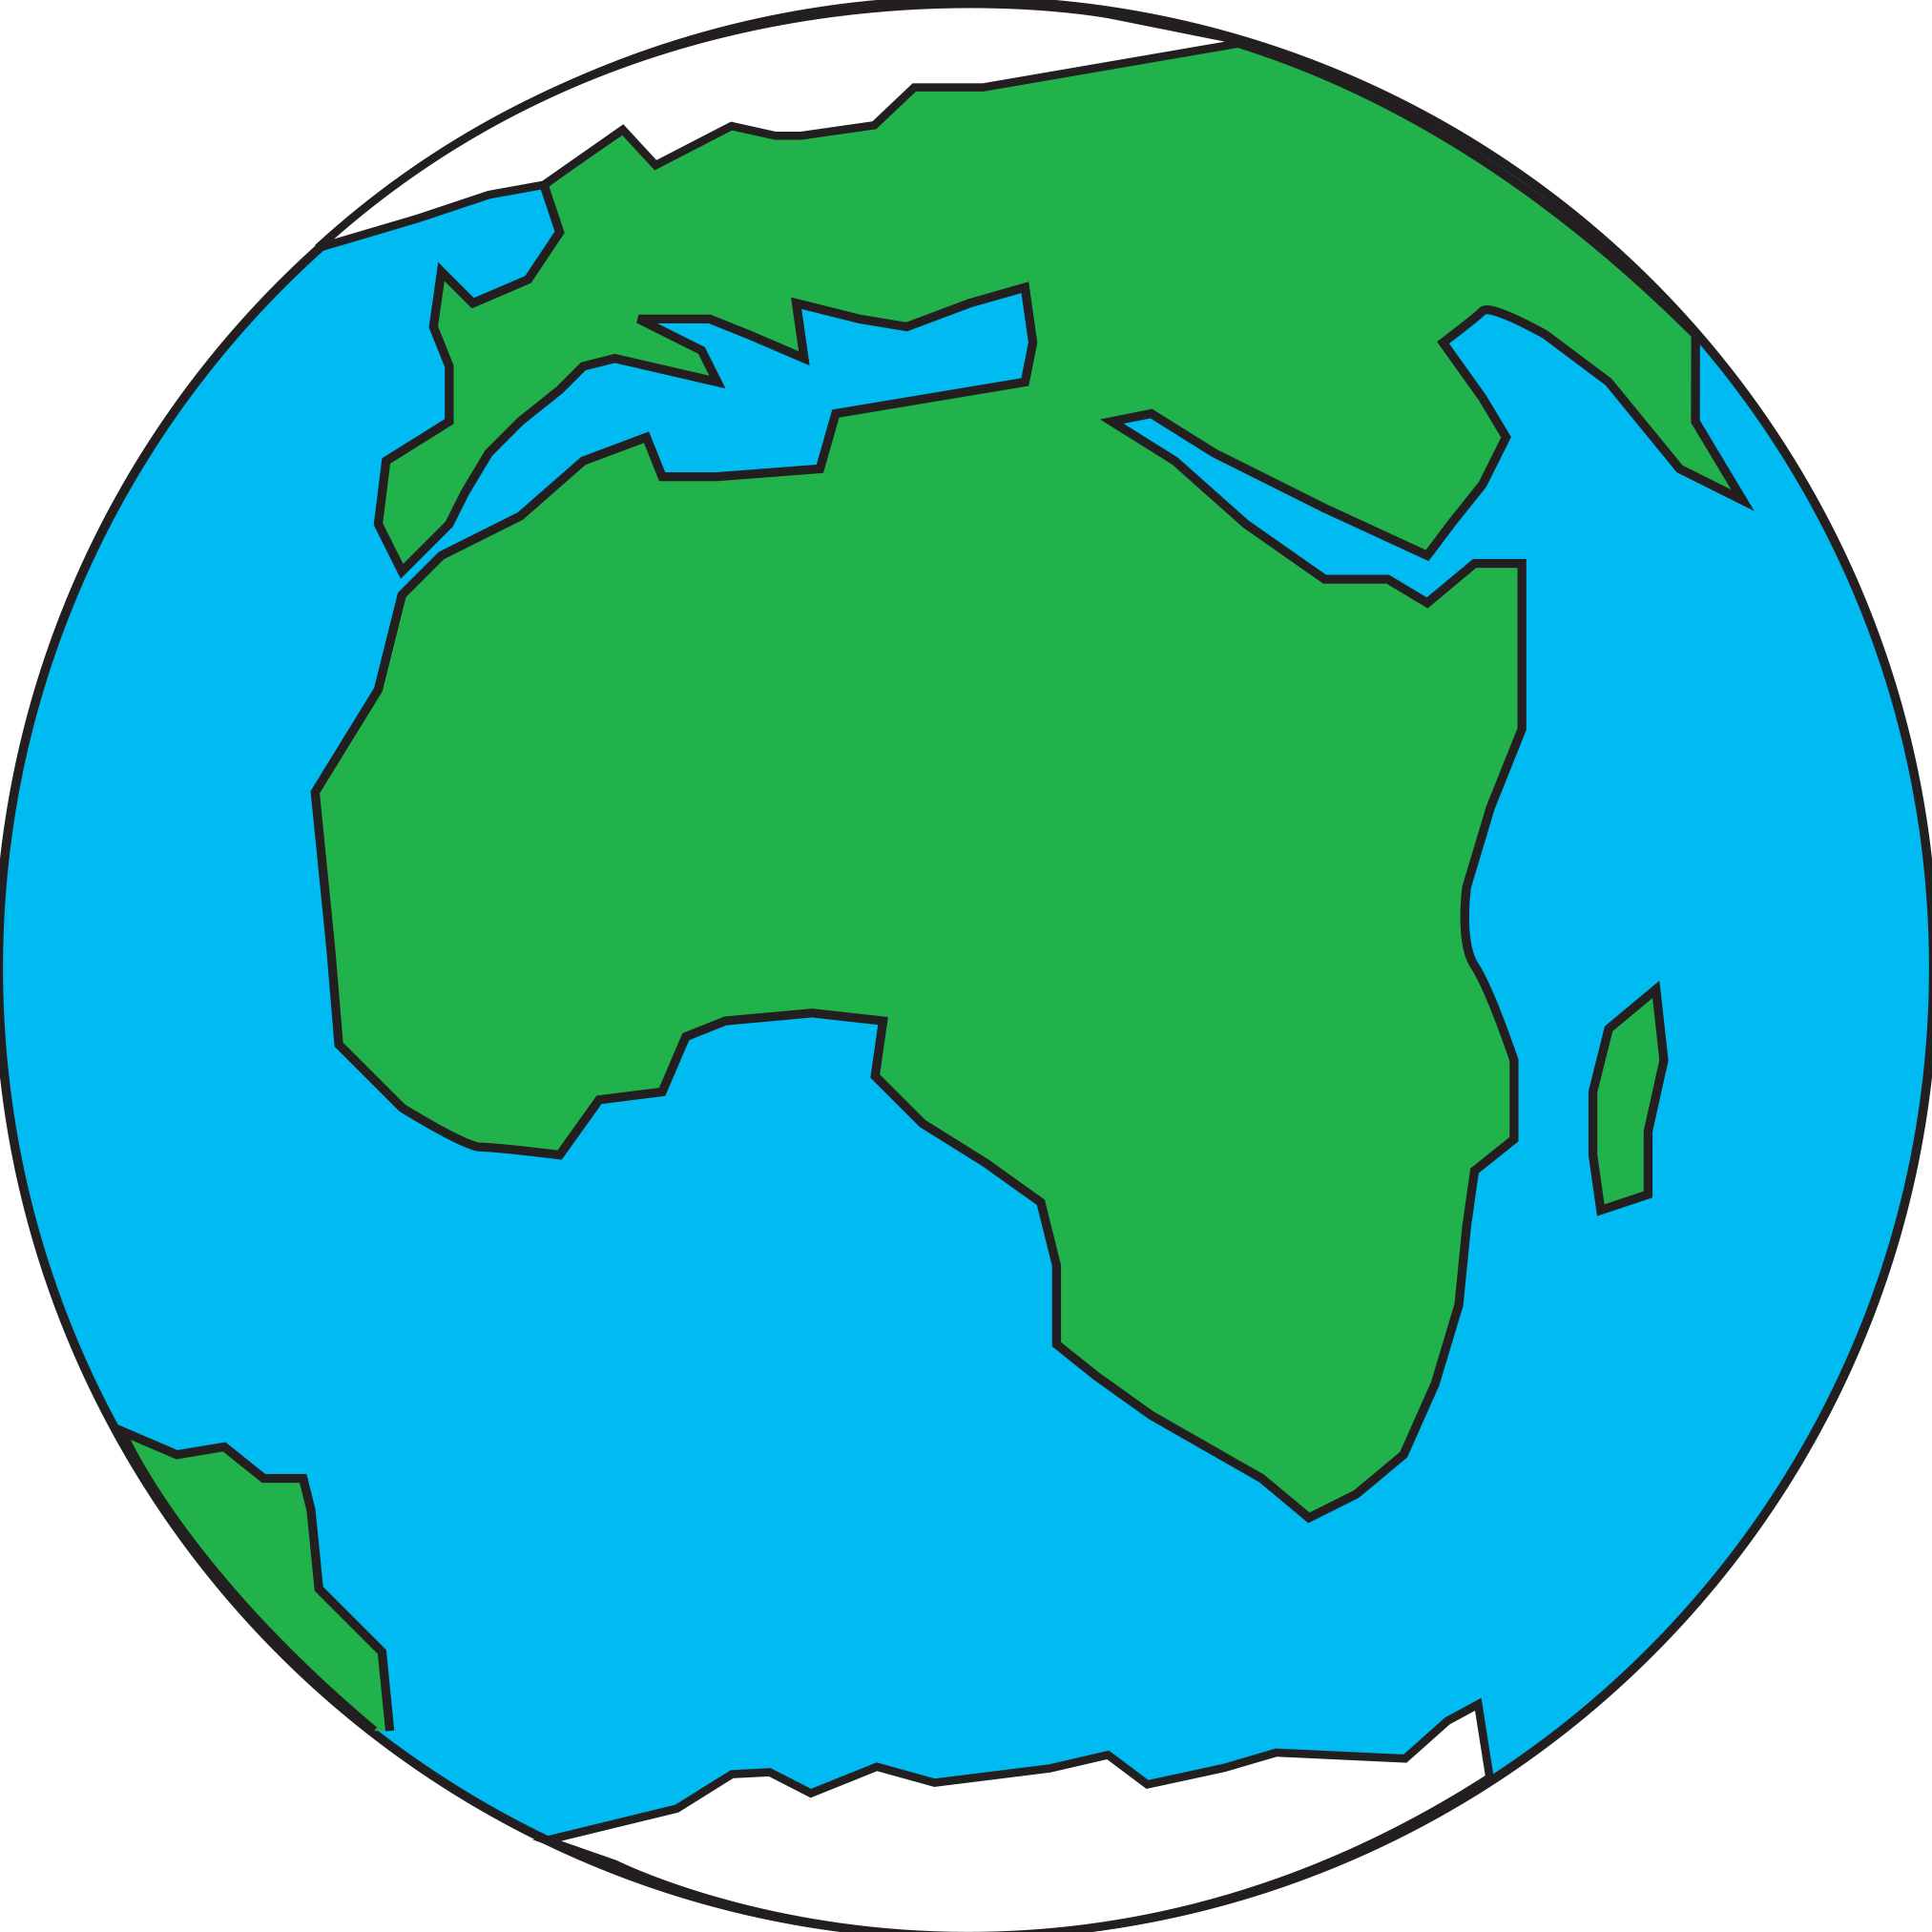 Planet Earth clipart half earth Of template :: Place Glass